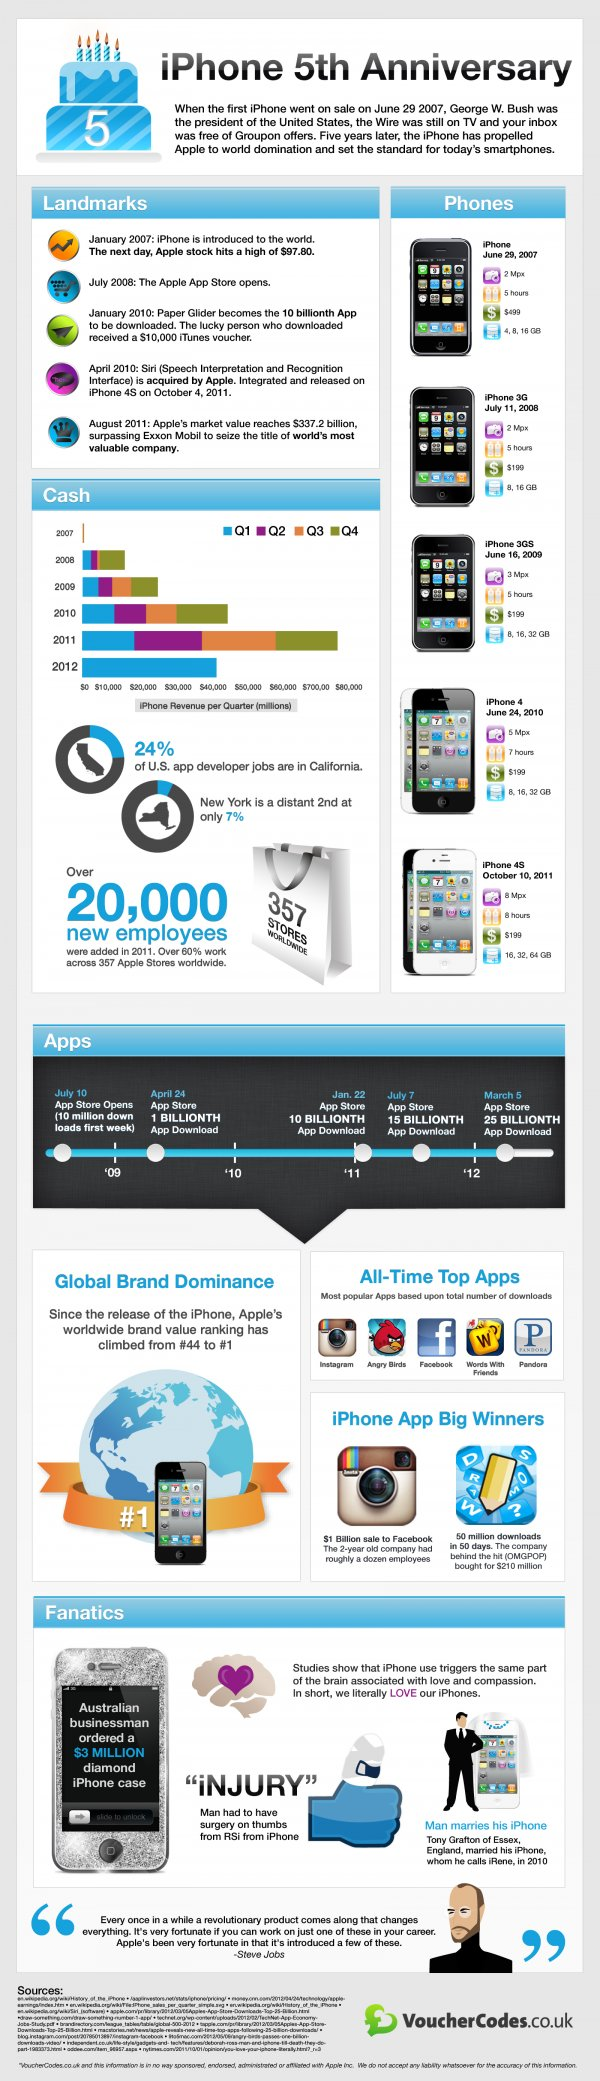 Apple iPhone 5th Anniversary